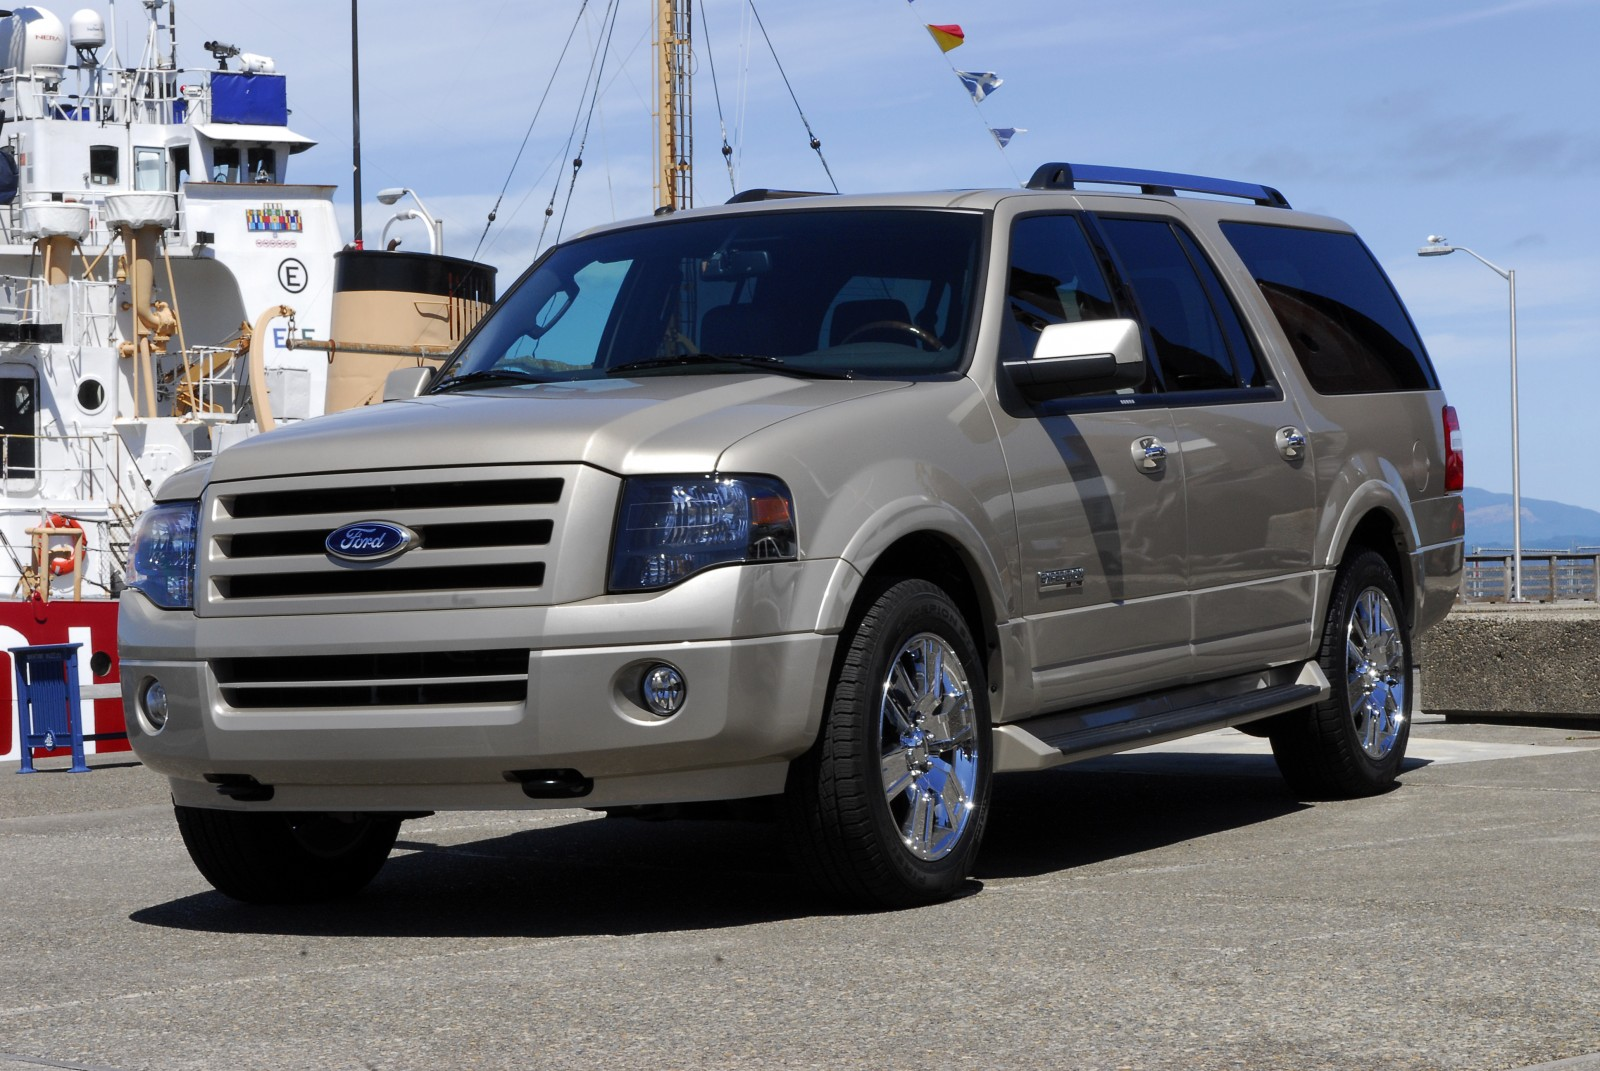 Ford expedition 2011 photo - 5